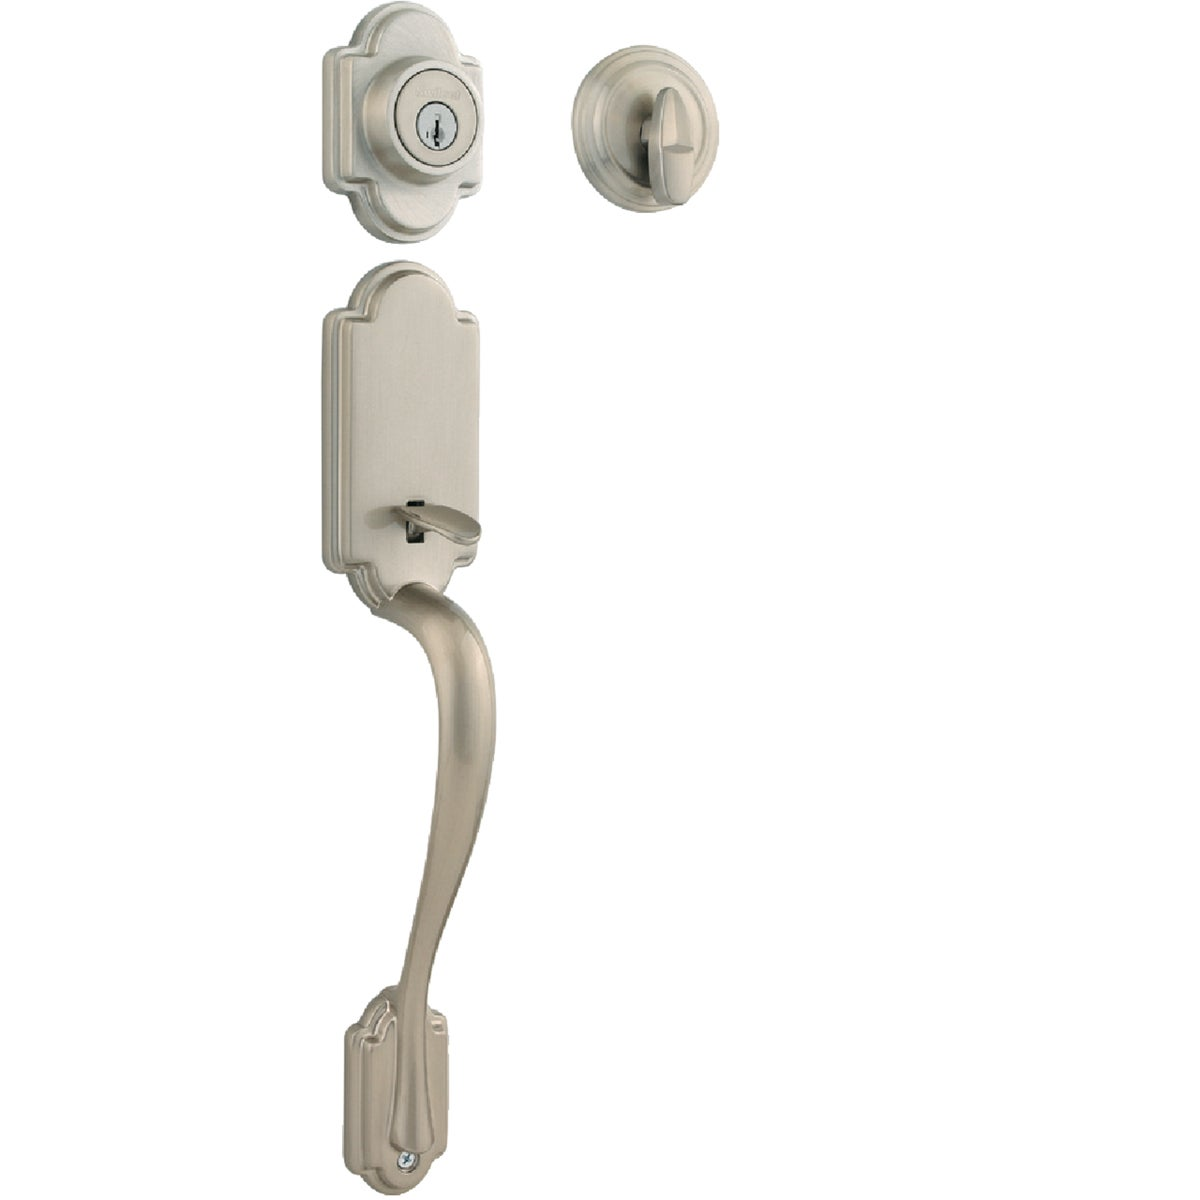 Item 211737, Arlington entry handleset with Tustin interior lever and SmartKey deadbolt. Satin nickel finish (15). SmartKey cylinder eliminates traditional pins and springs.